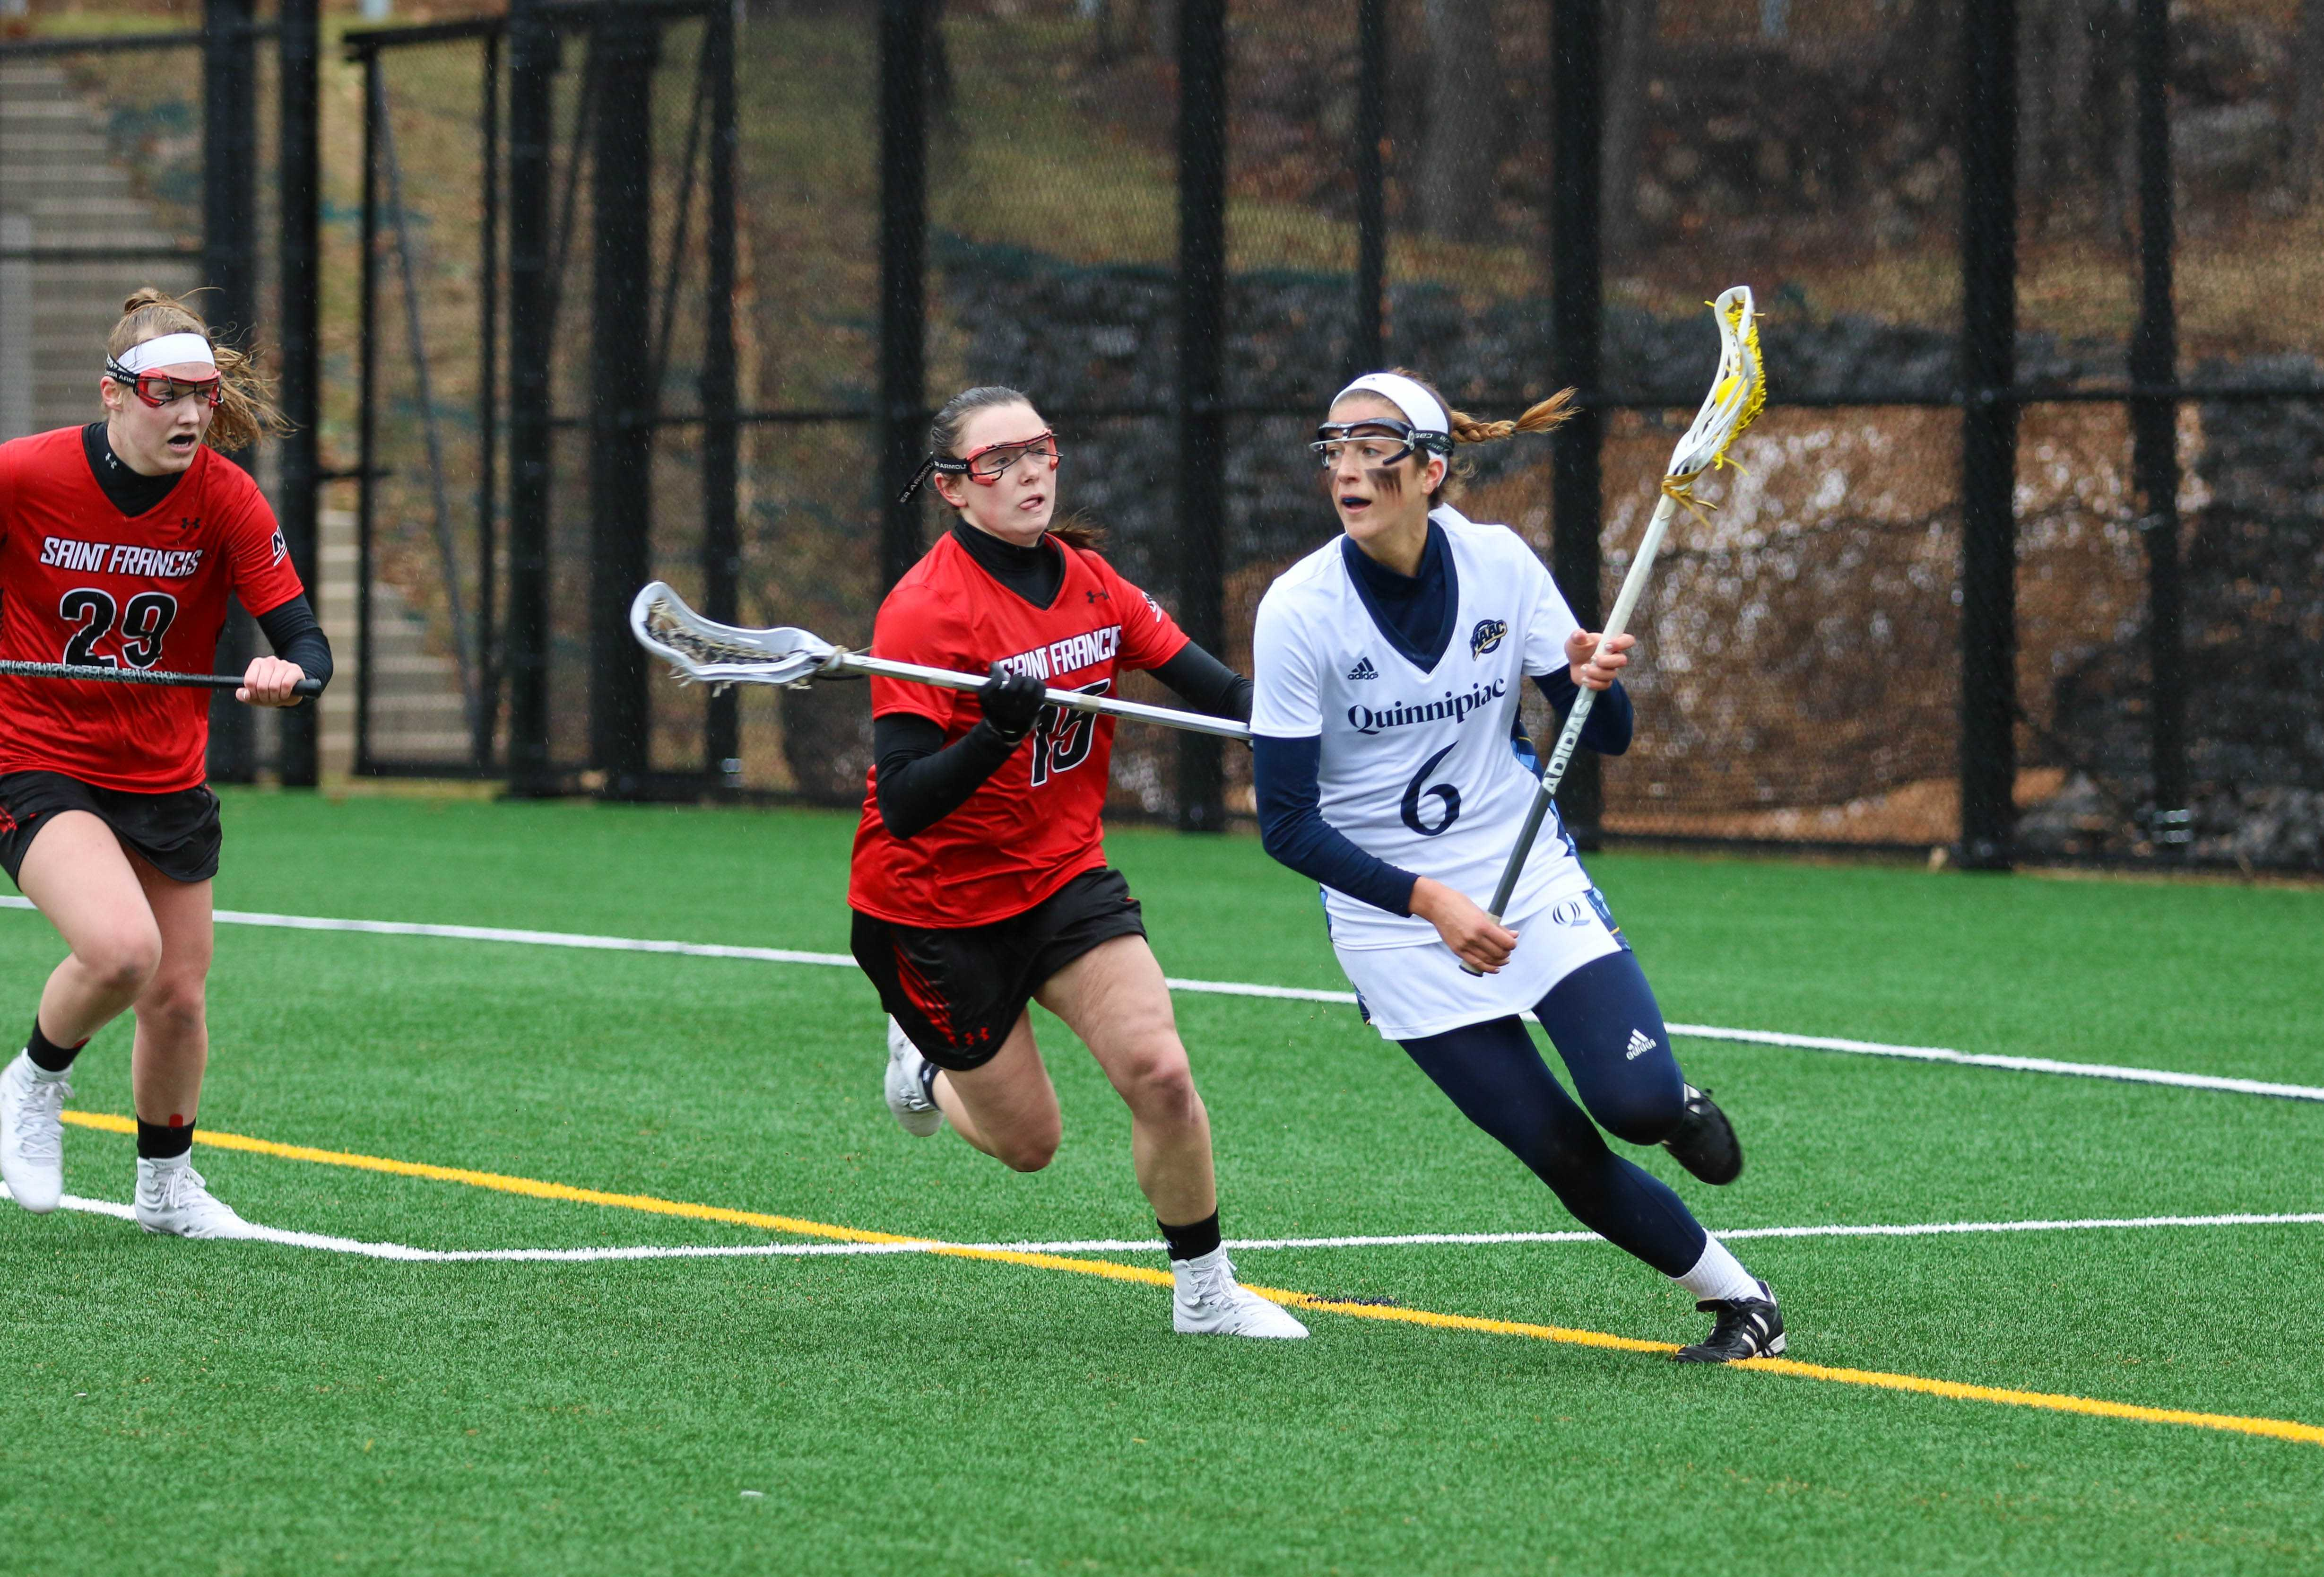 Quinnipiac women's lacrosse gets first win of the season over Saint Francis